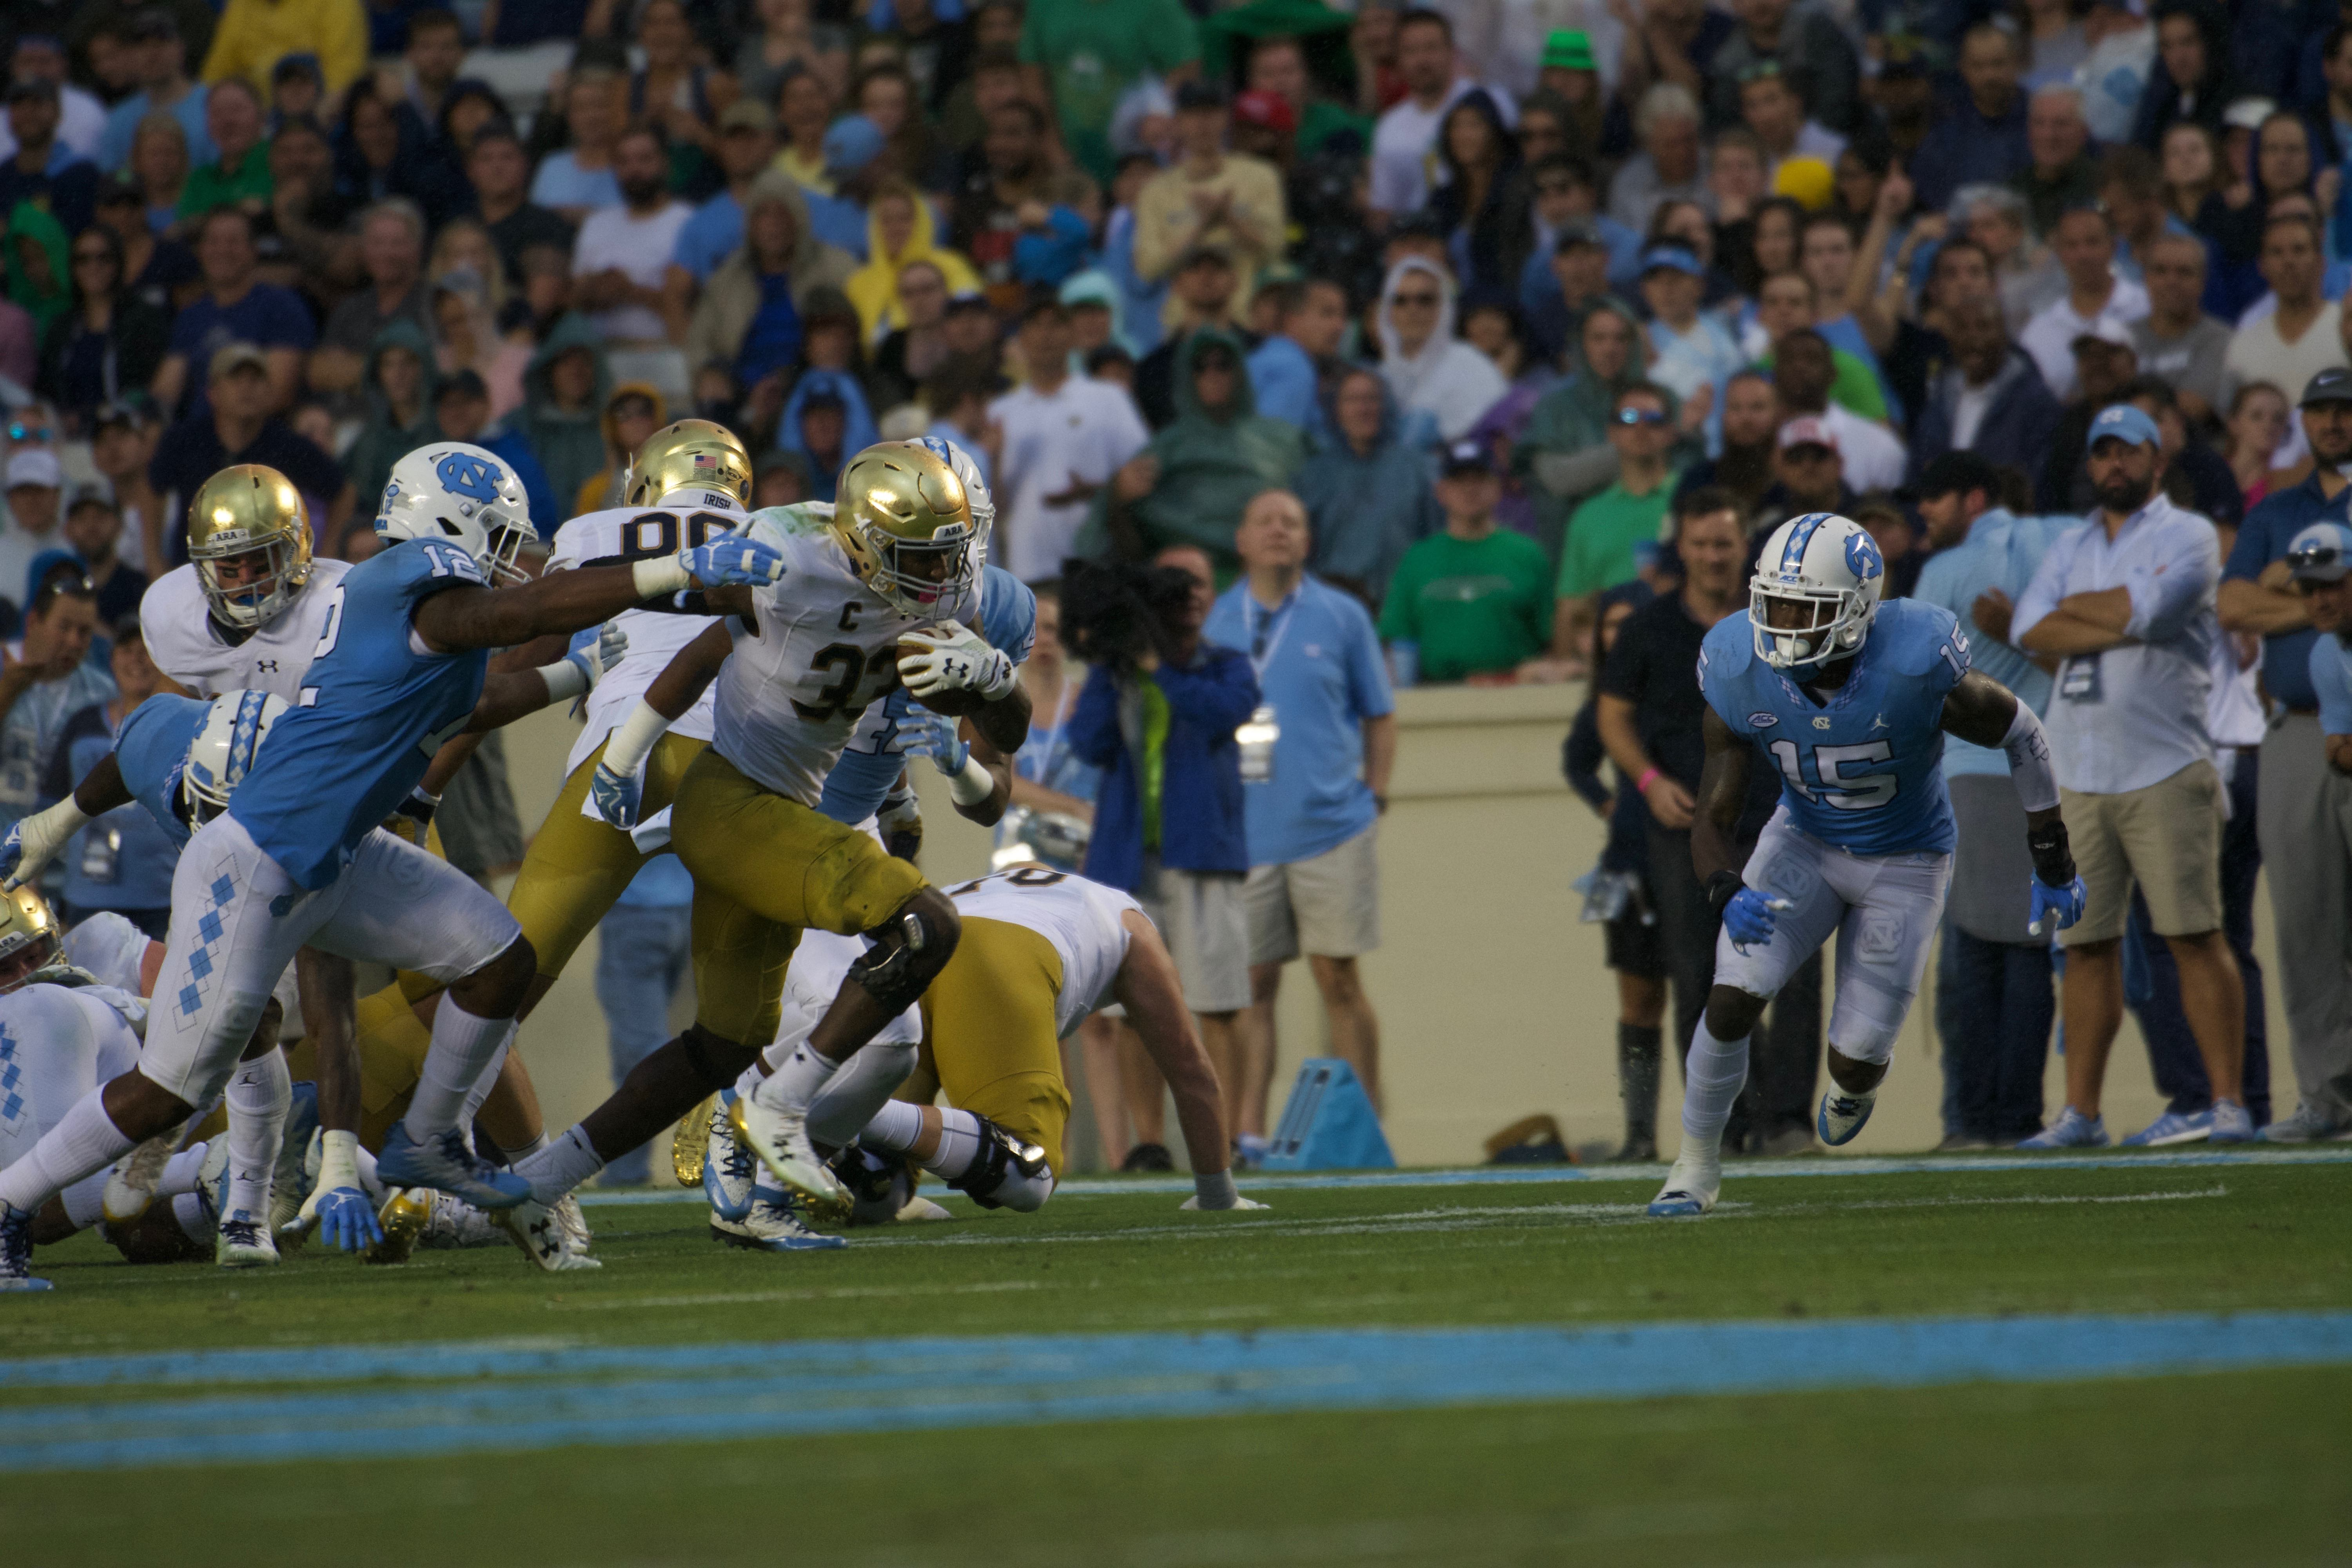 Irish junior running back Josh Adams breaks away from a defender during Notre Dame's 33-10 win over North Carolina on Saturday at Kenan Memorial Stadium in Chapel Hill, North Carolina.